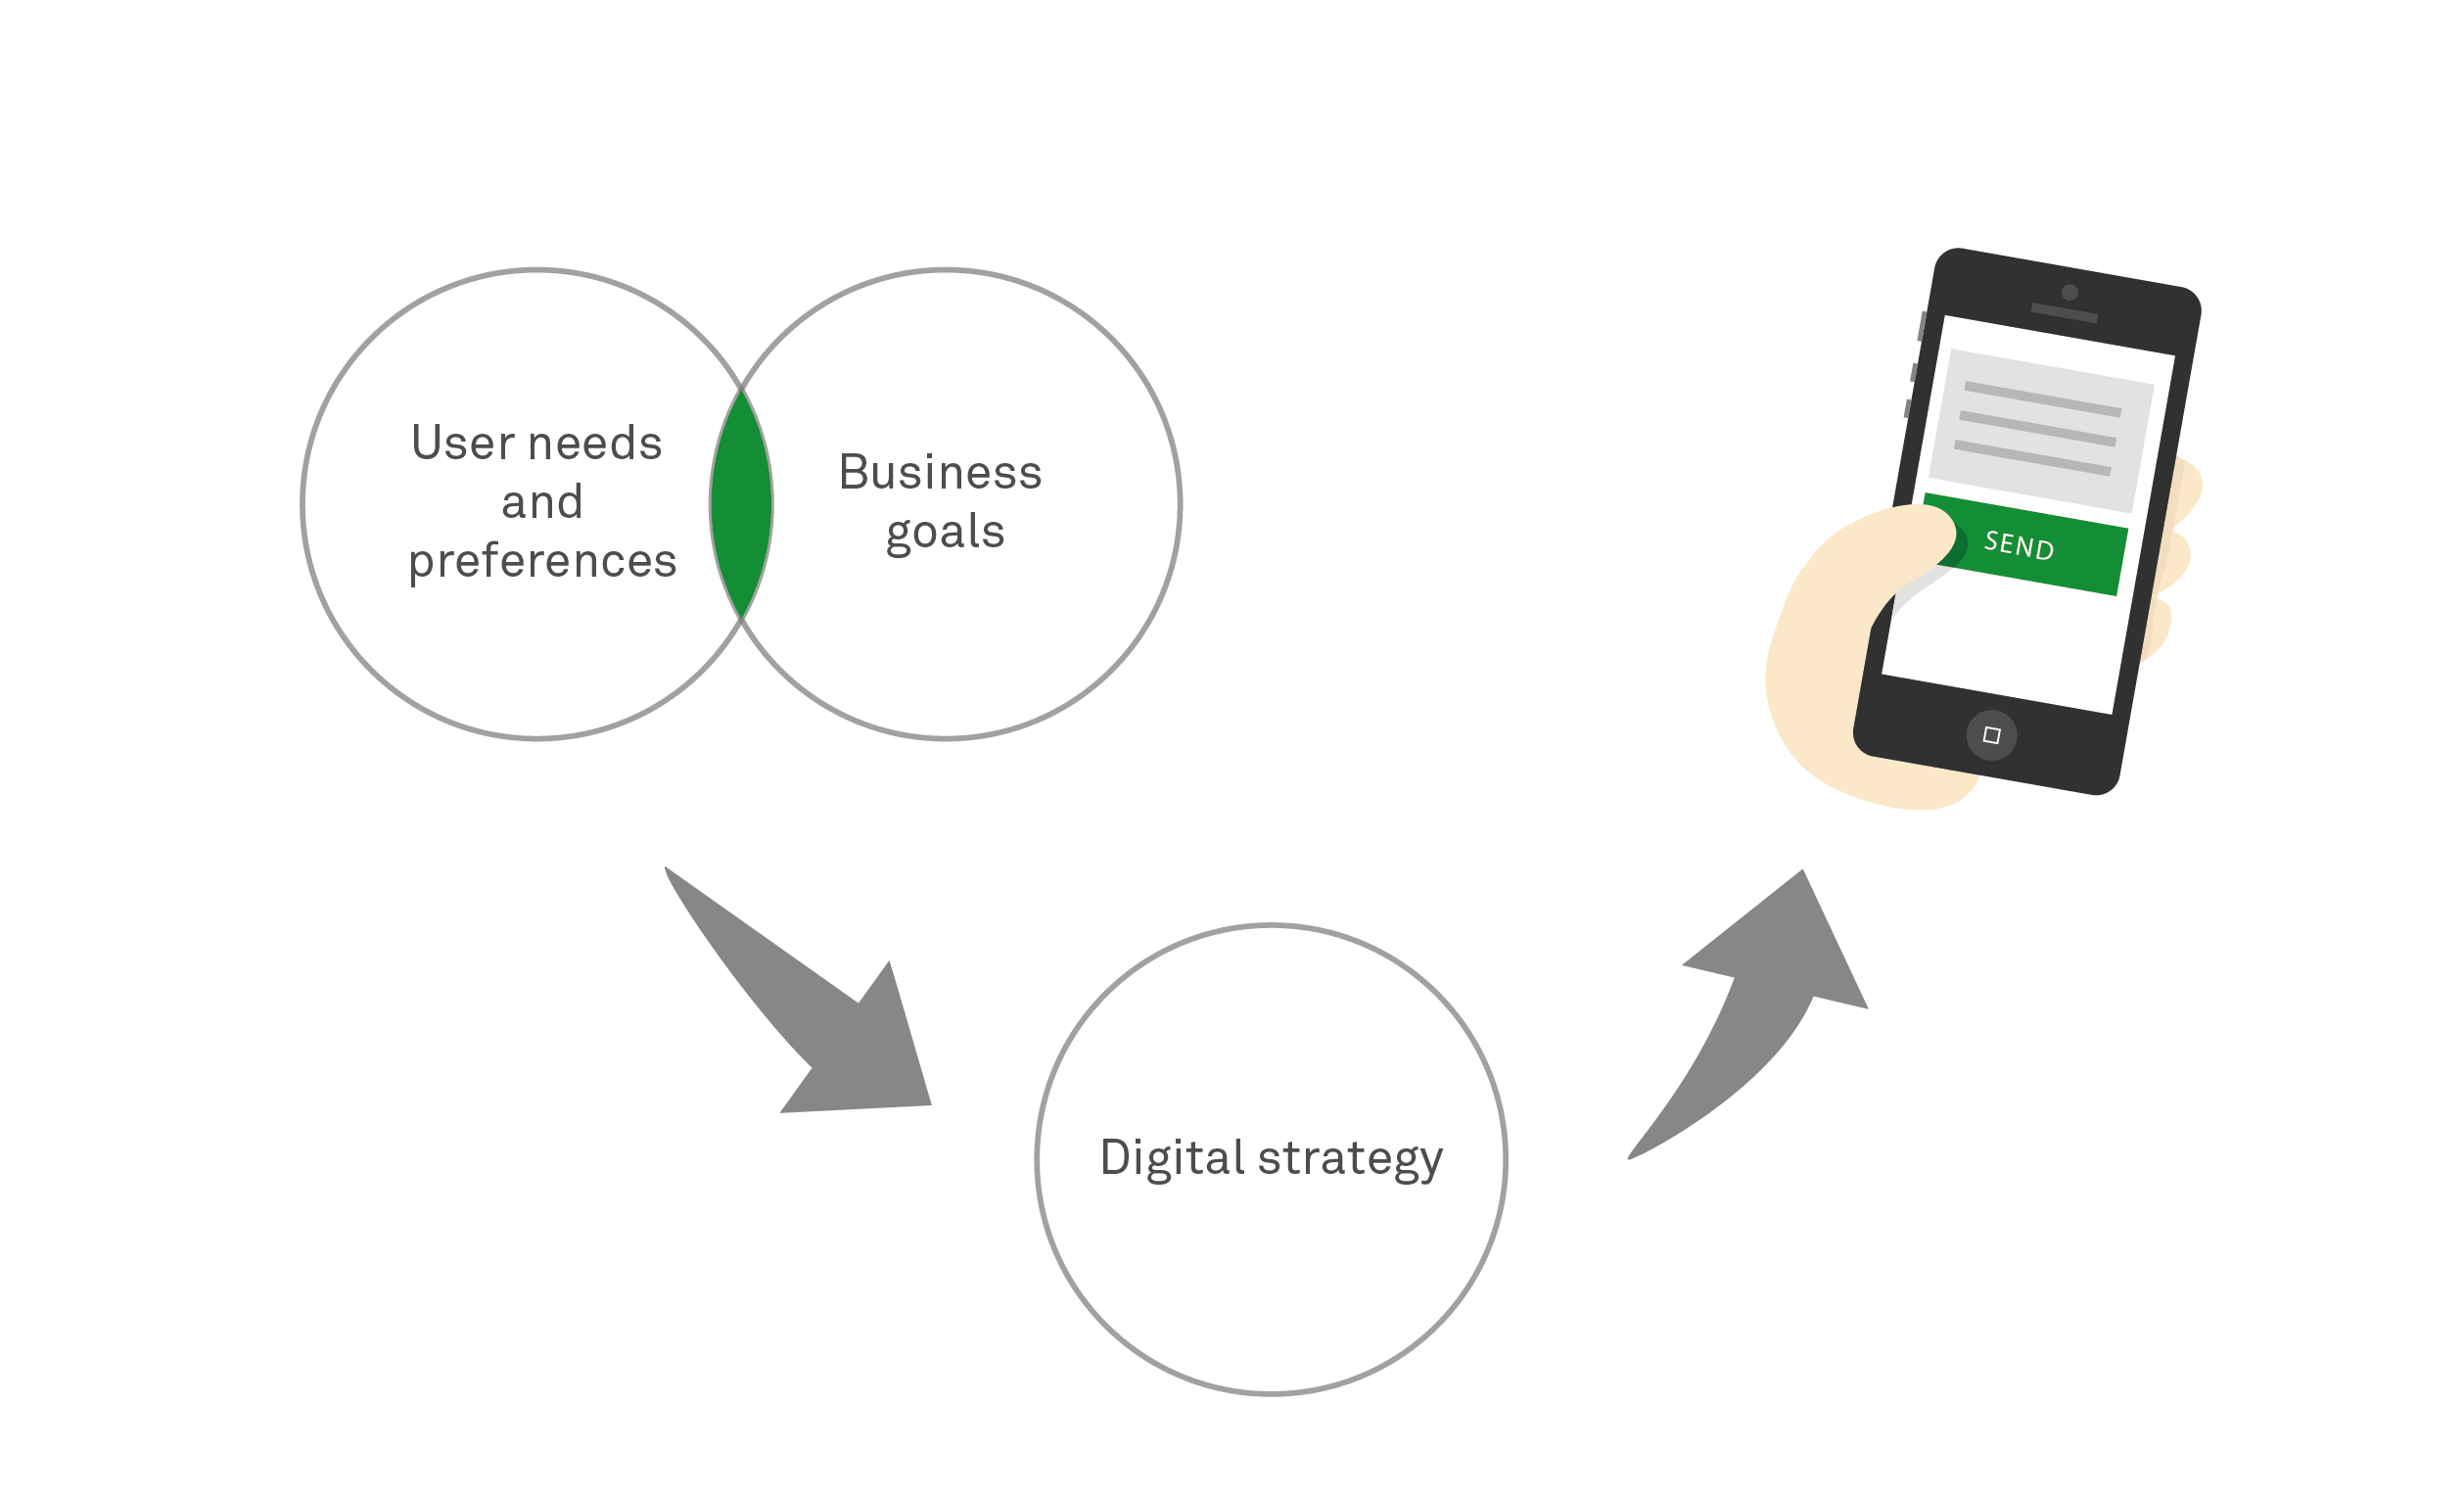 Designing Digital Strategies, Part 2: Connected User